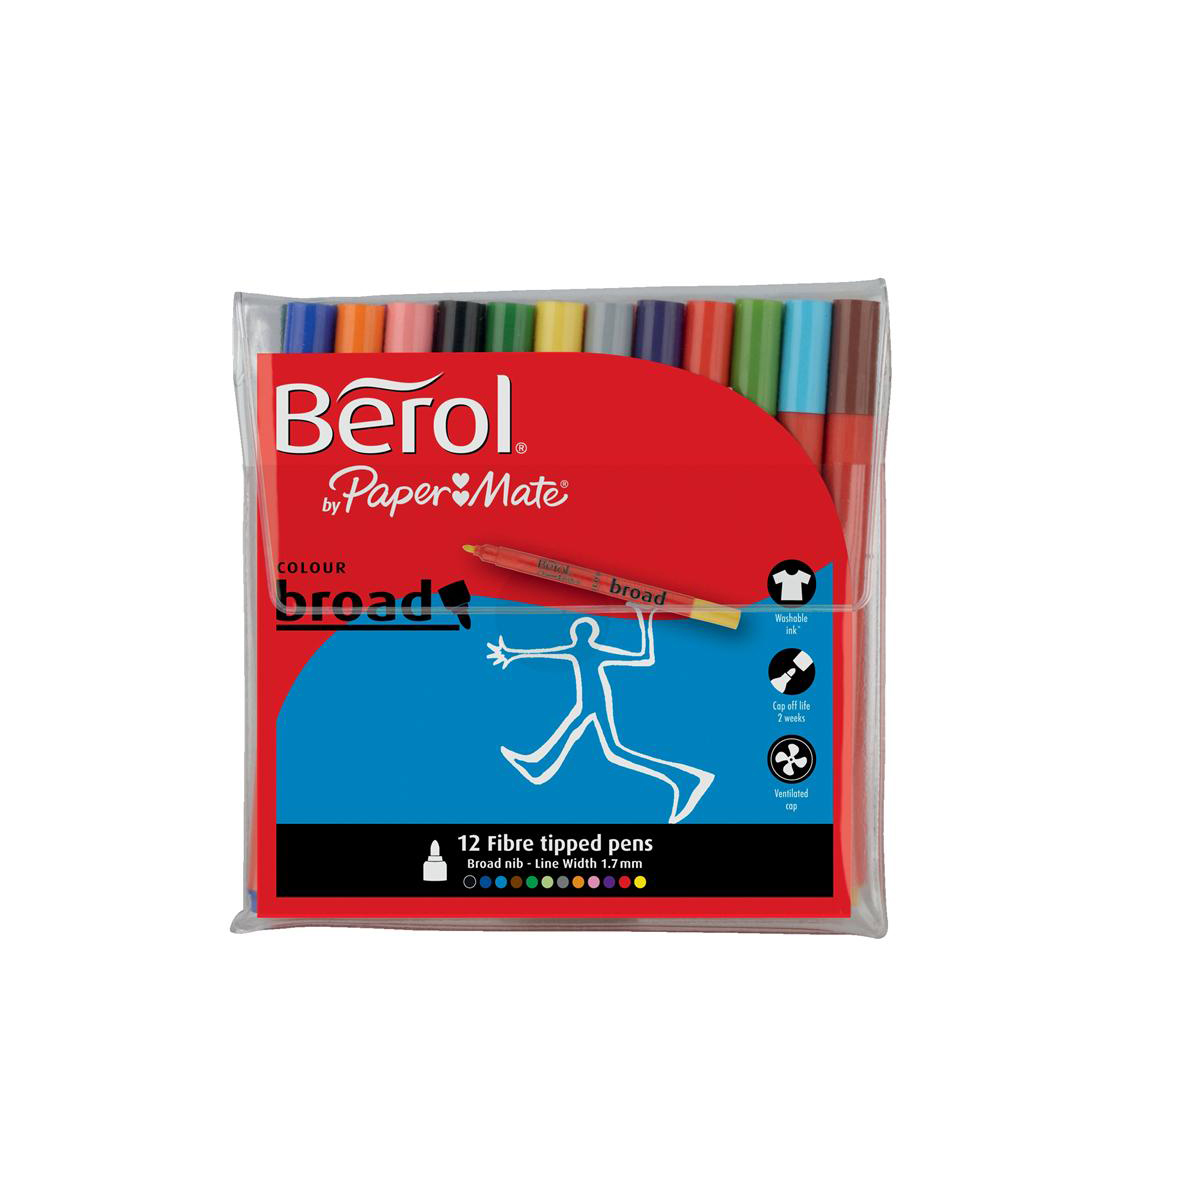 Colouring Pens Berol Colour Broad Pens with Washable Ink 1.7mm Line Wallet Assorted Ref 2057596 [Pack 12]